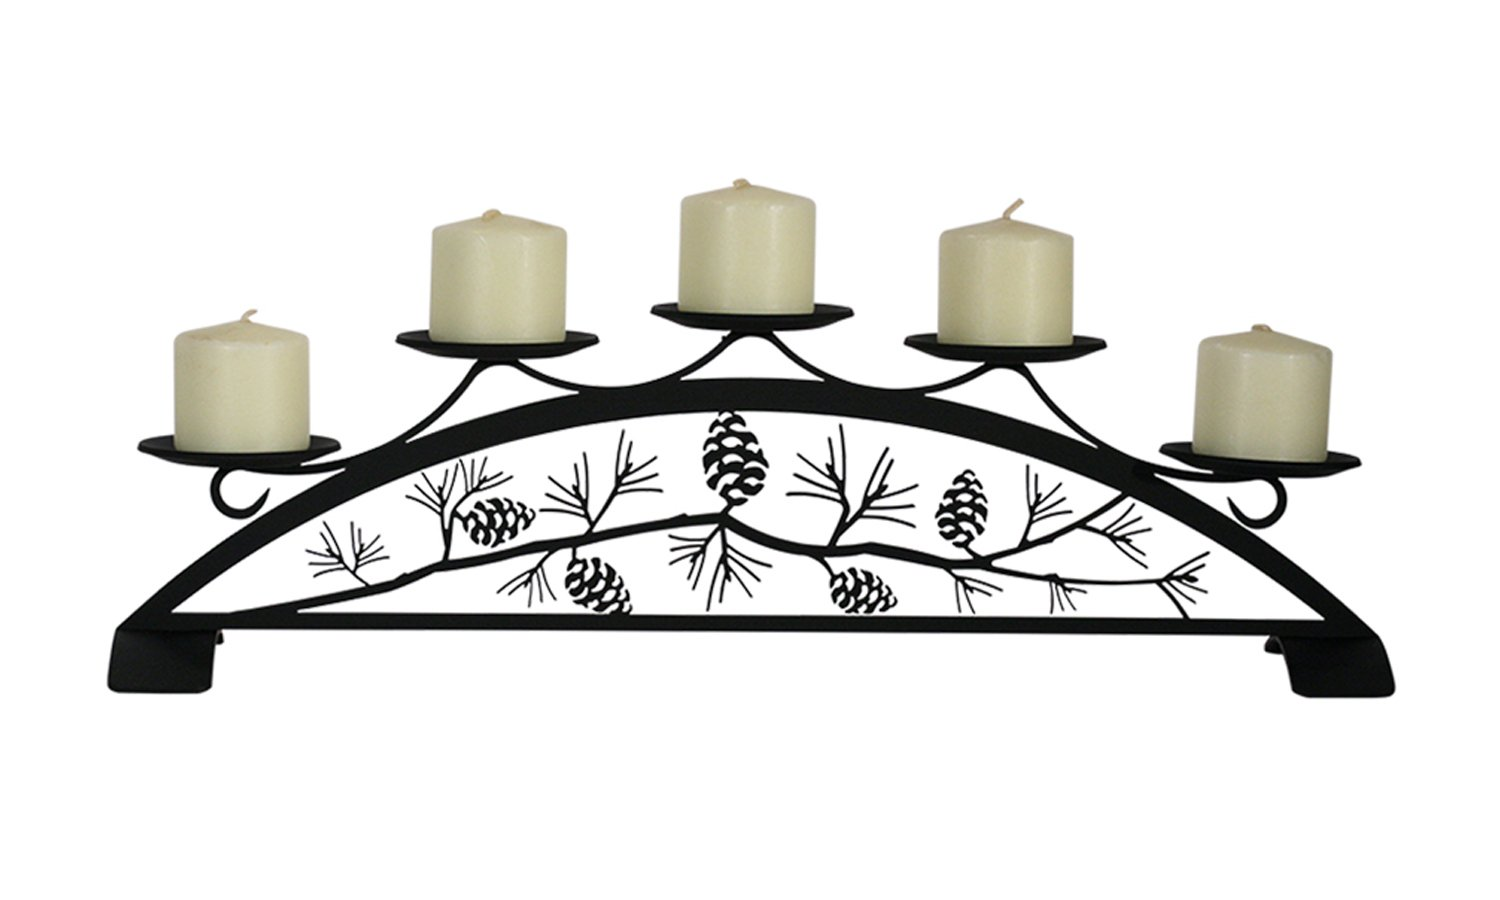 Village Wrought Iron VMI C-PLB-89 Pinecone - Table Top/Fireplace Pillar Candle Holder